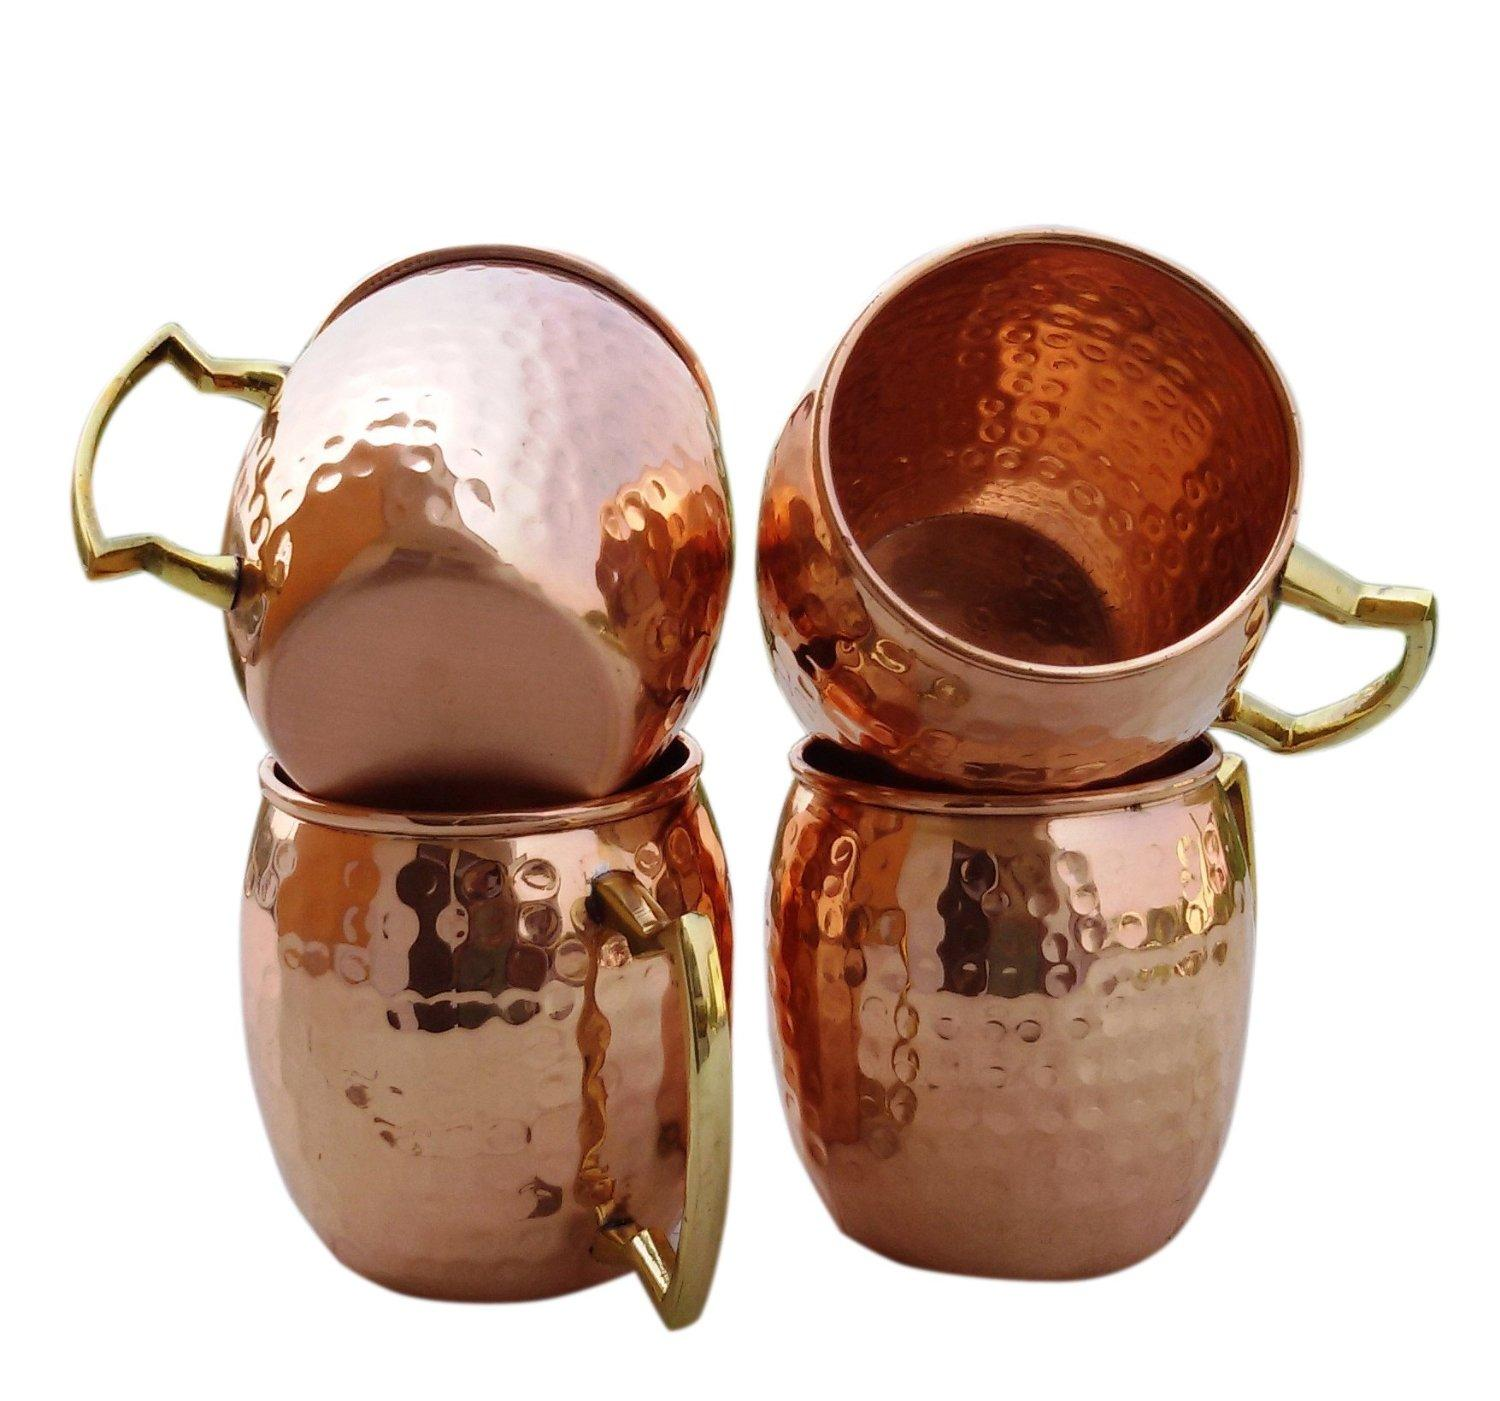 Hammered Copper Moscow Mule Mug Handmade of 100% Pure Copper